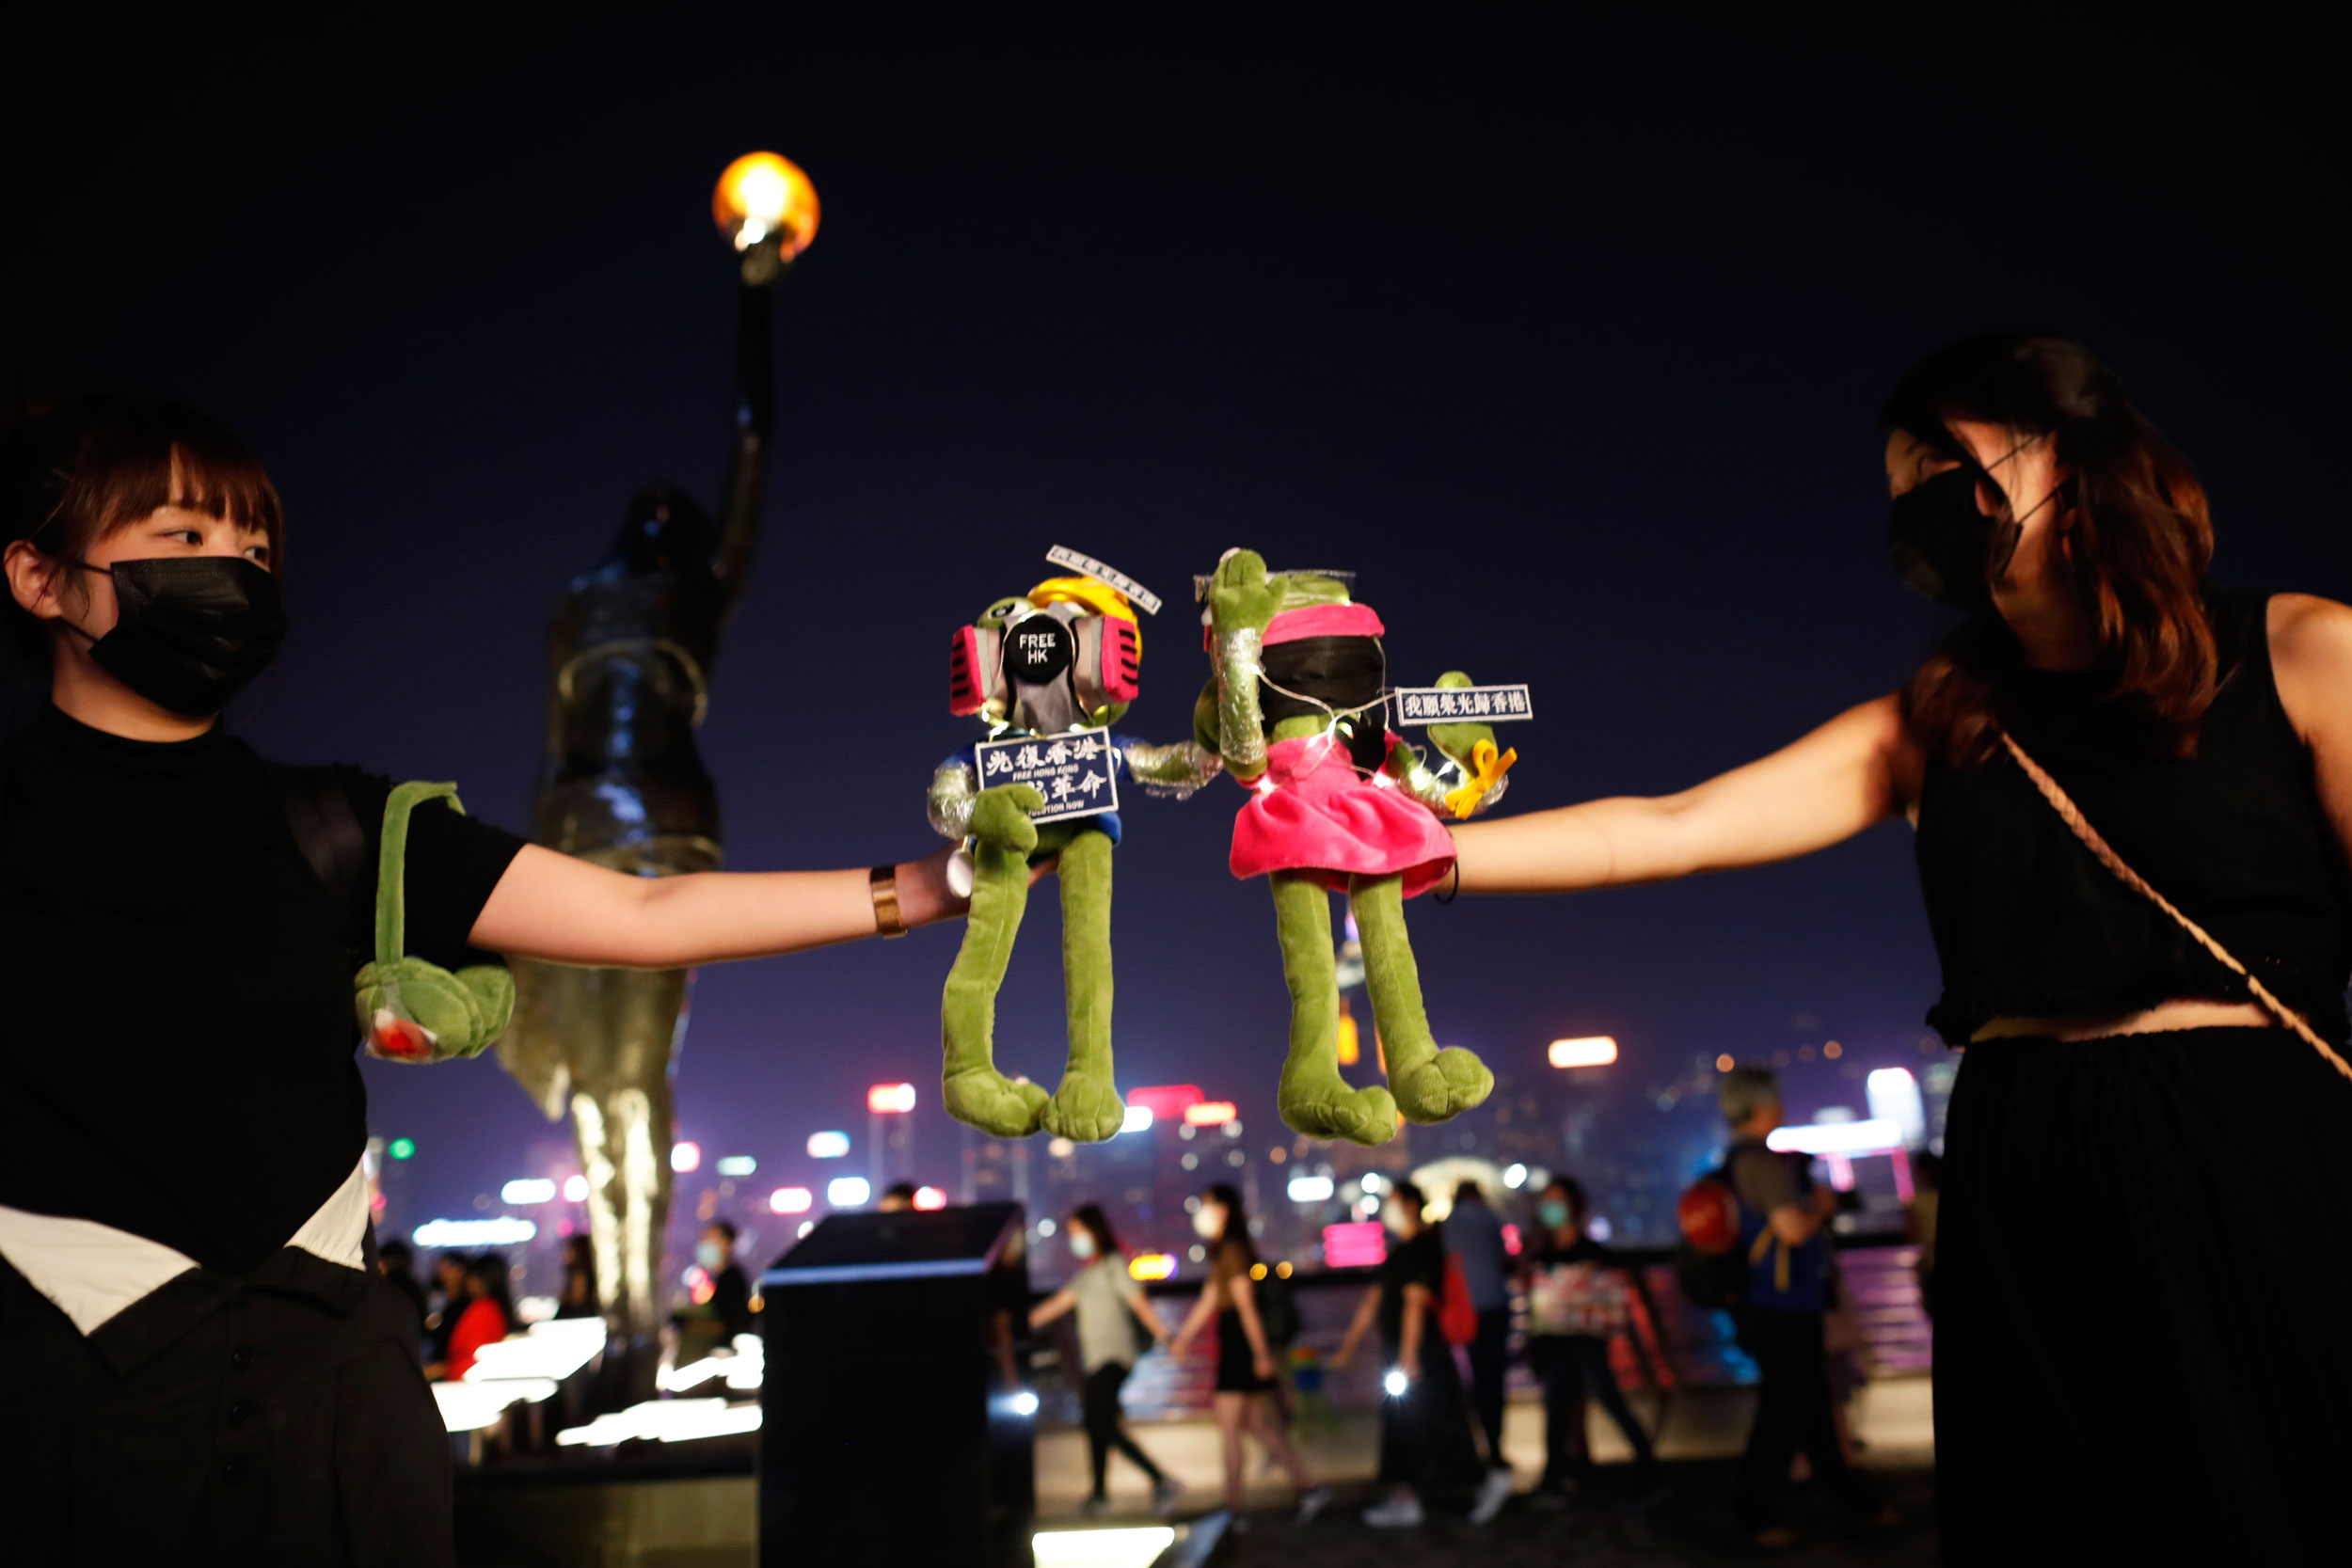 Students hold up 'Pepe the frog' while forming a long human chain at the Hong Kong harbour front on September 30, 2019.